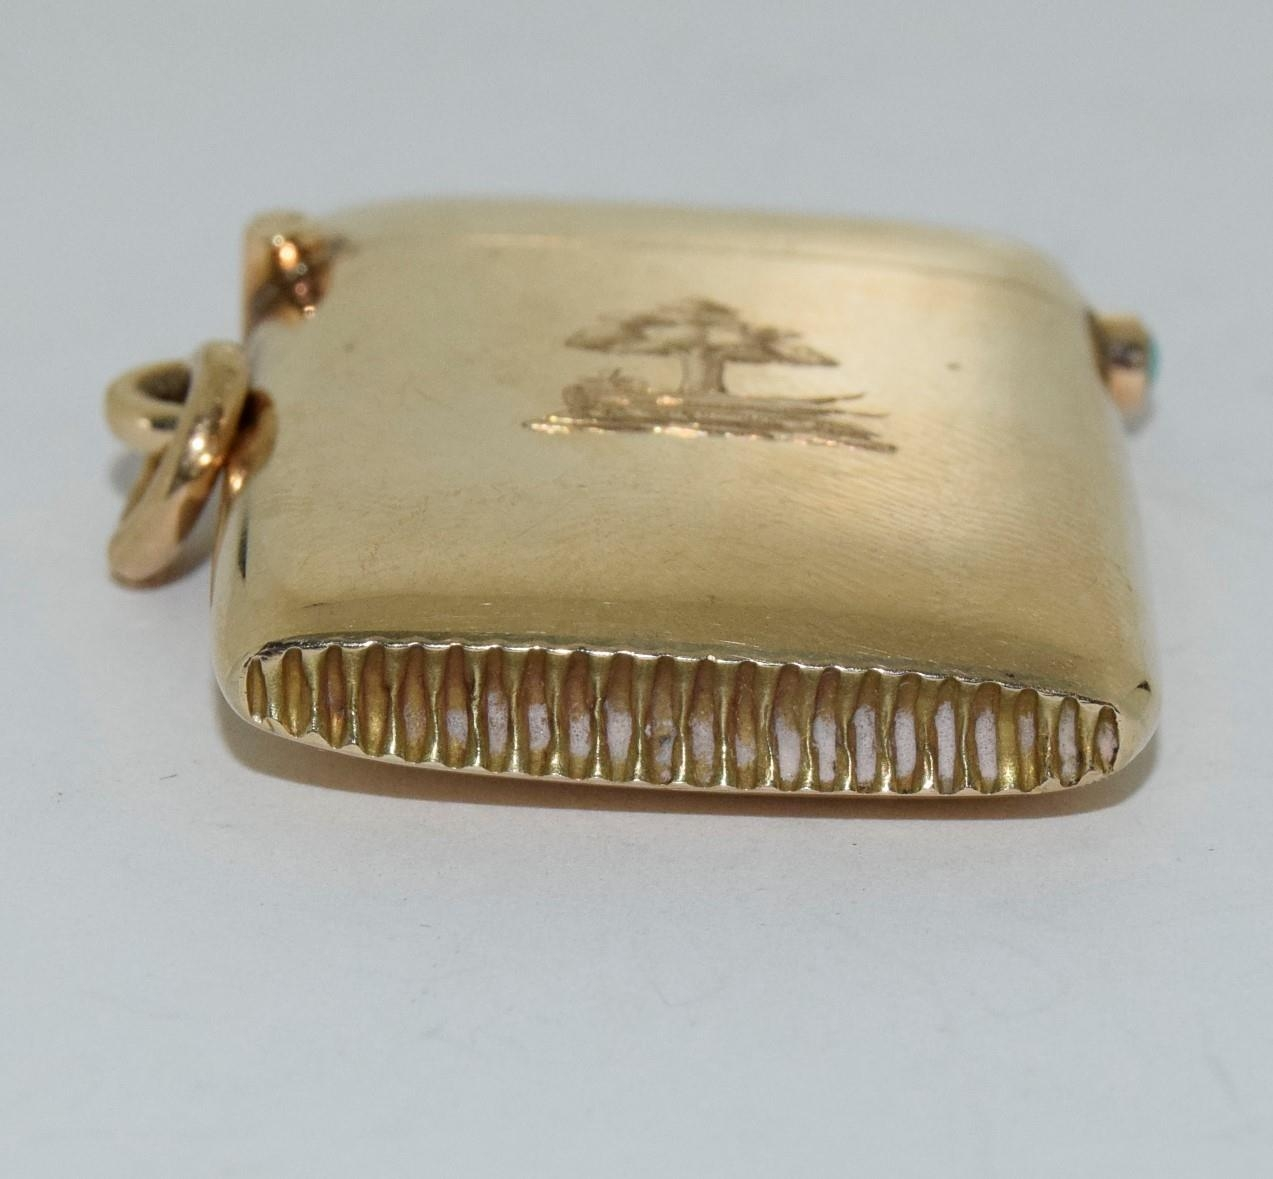 9ct gold Vesta case with a turquoise cabochon fully hallmarked for London 1878 by George Gray - Image 5 of 6